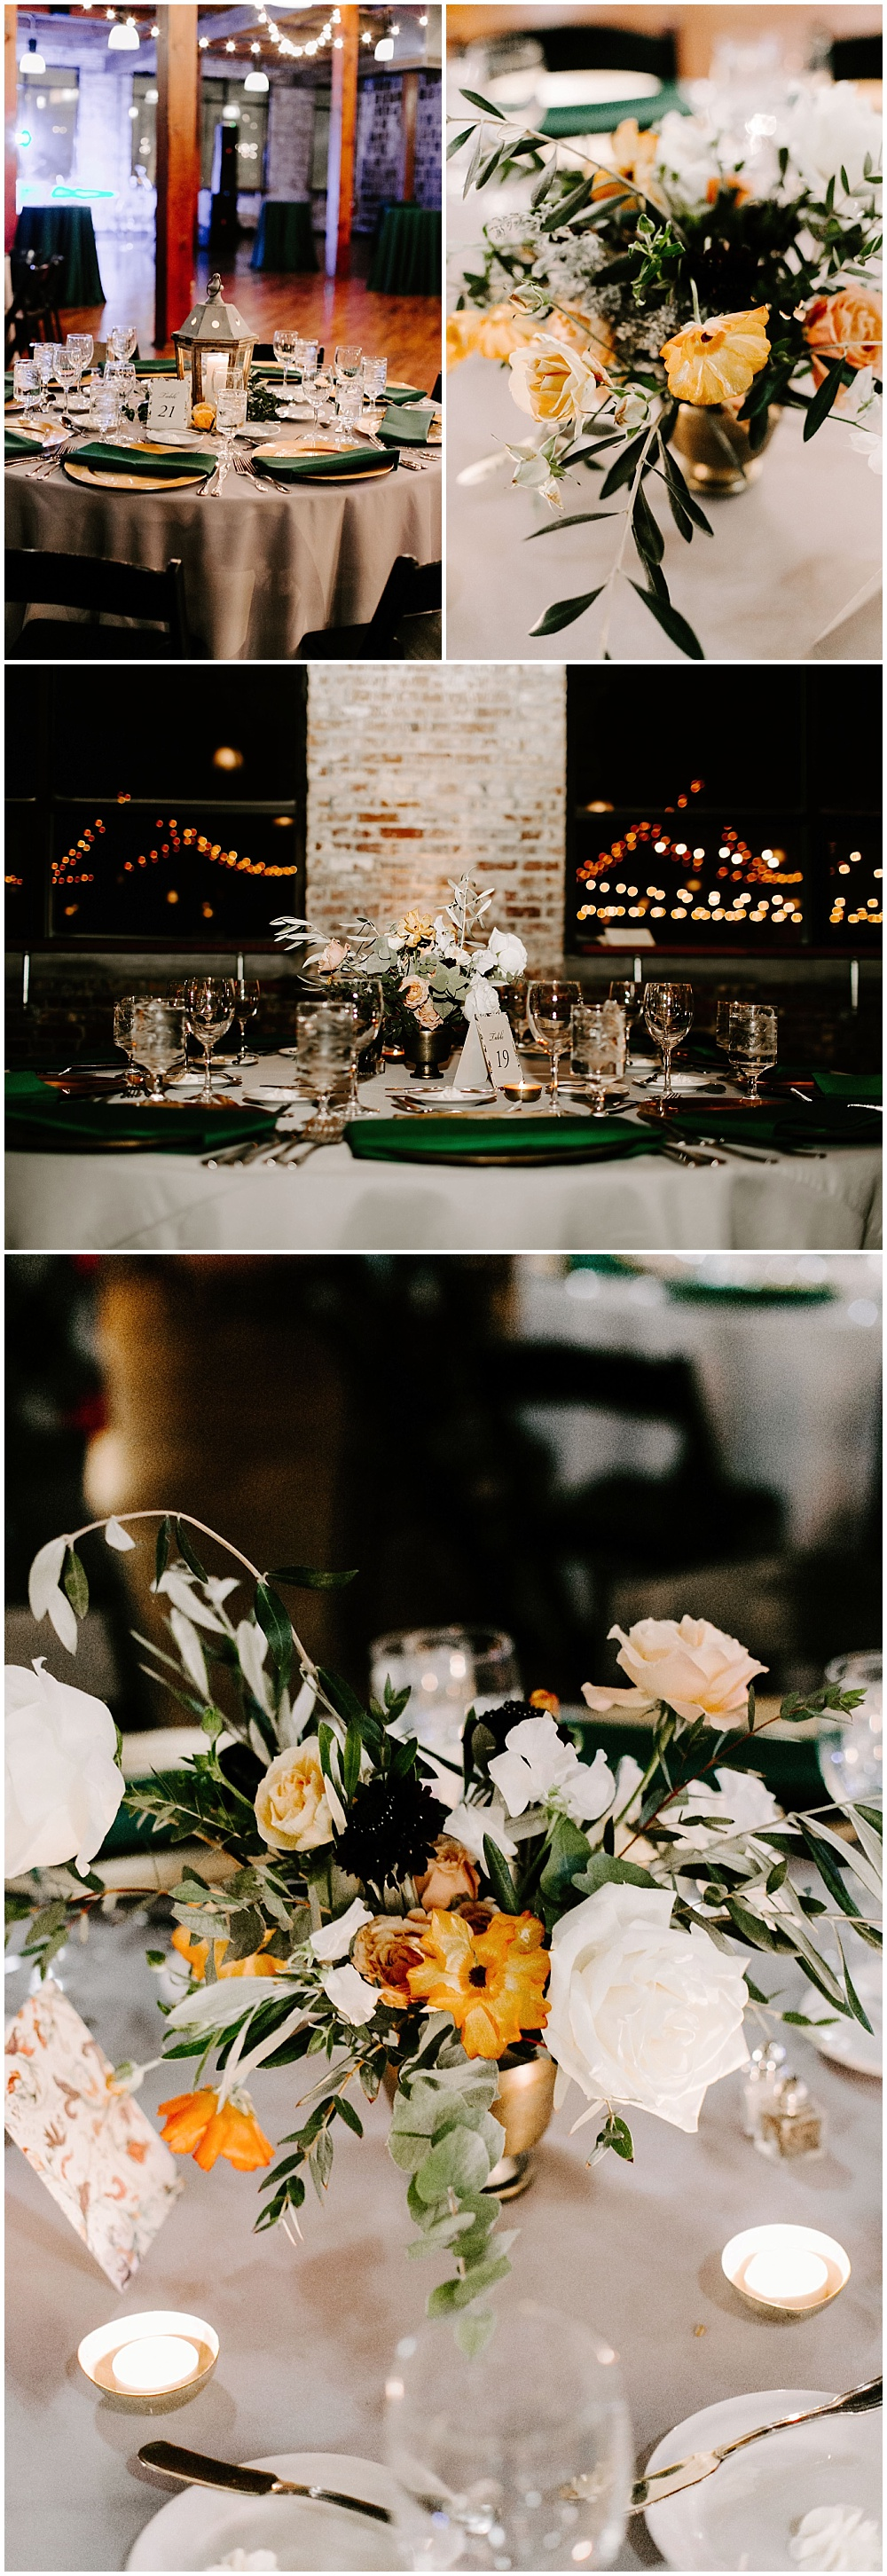 Hunter green wedding tablescape with pops of orange and gold. | Industrial winter wedding at the Biltwell Event Center in downtown Indianapolis alongside Emily Wehner Photography and Jessica Dum Wedding Coordination